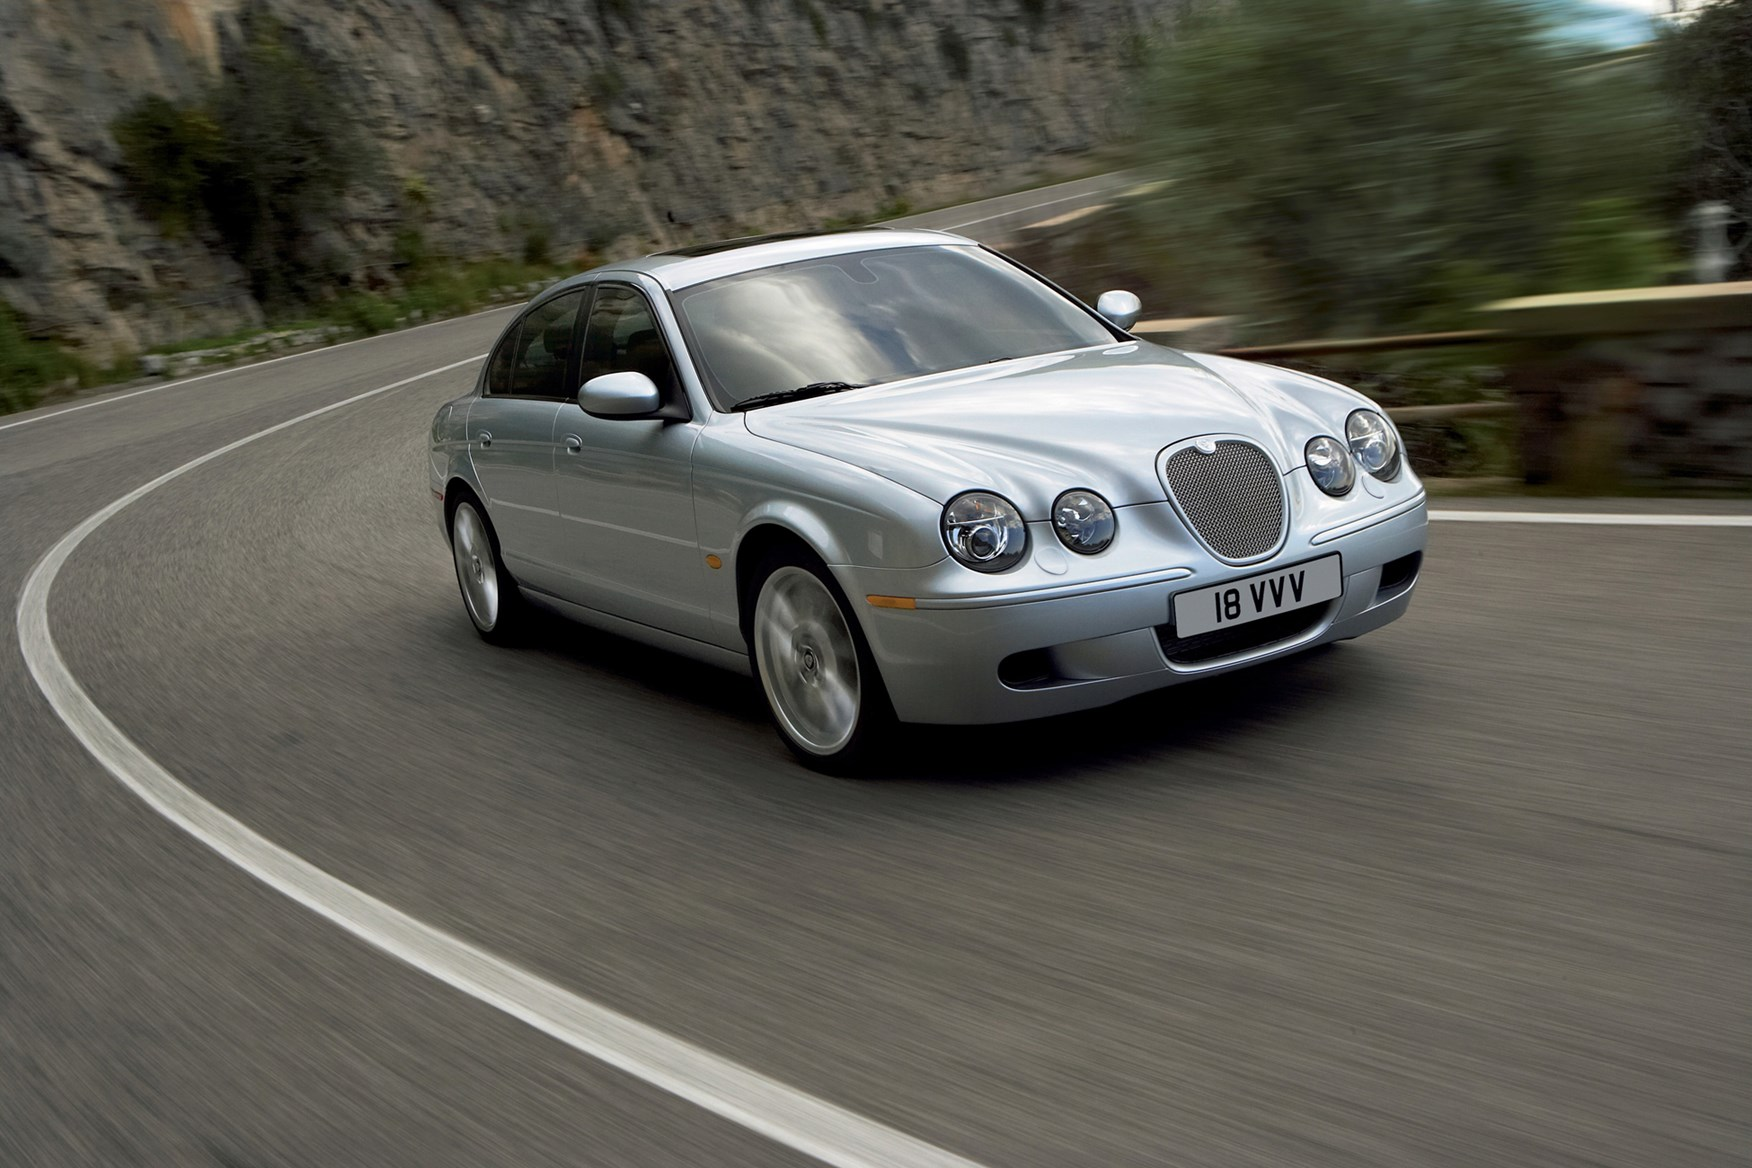 Jaguar S-Type Saloon Review (1999 - 2007)